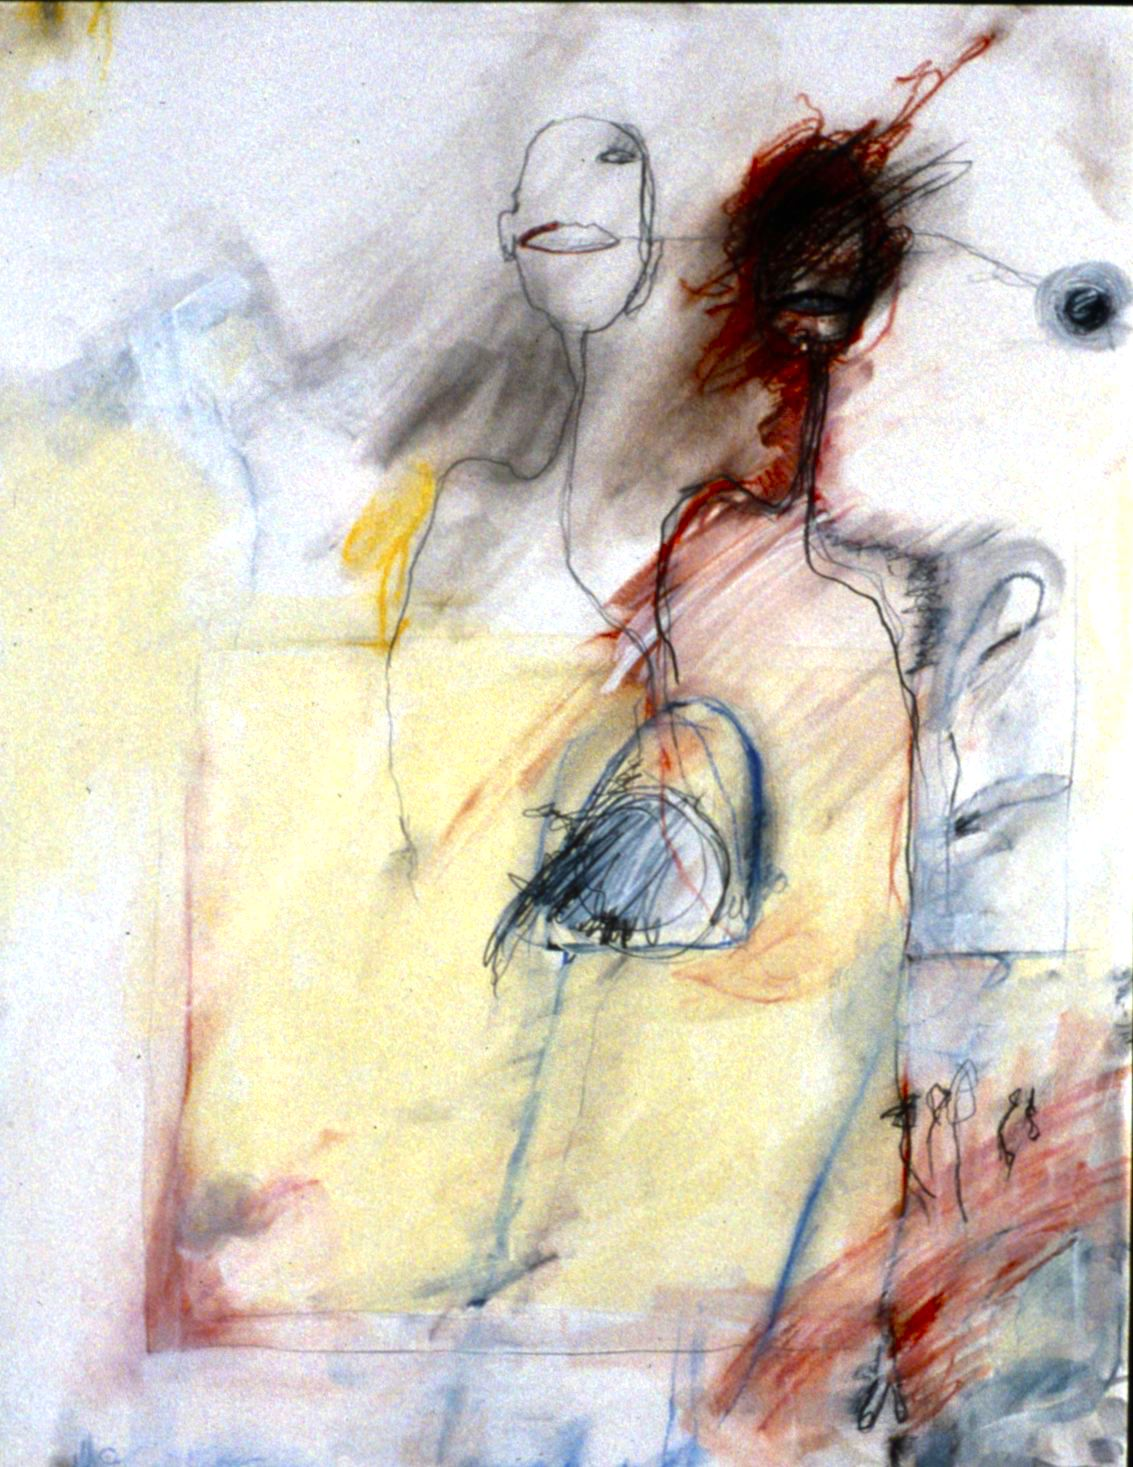 1997 oil, graphite and pastel on paper 24 x 19 inches